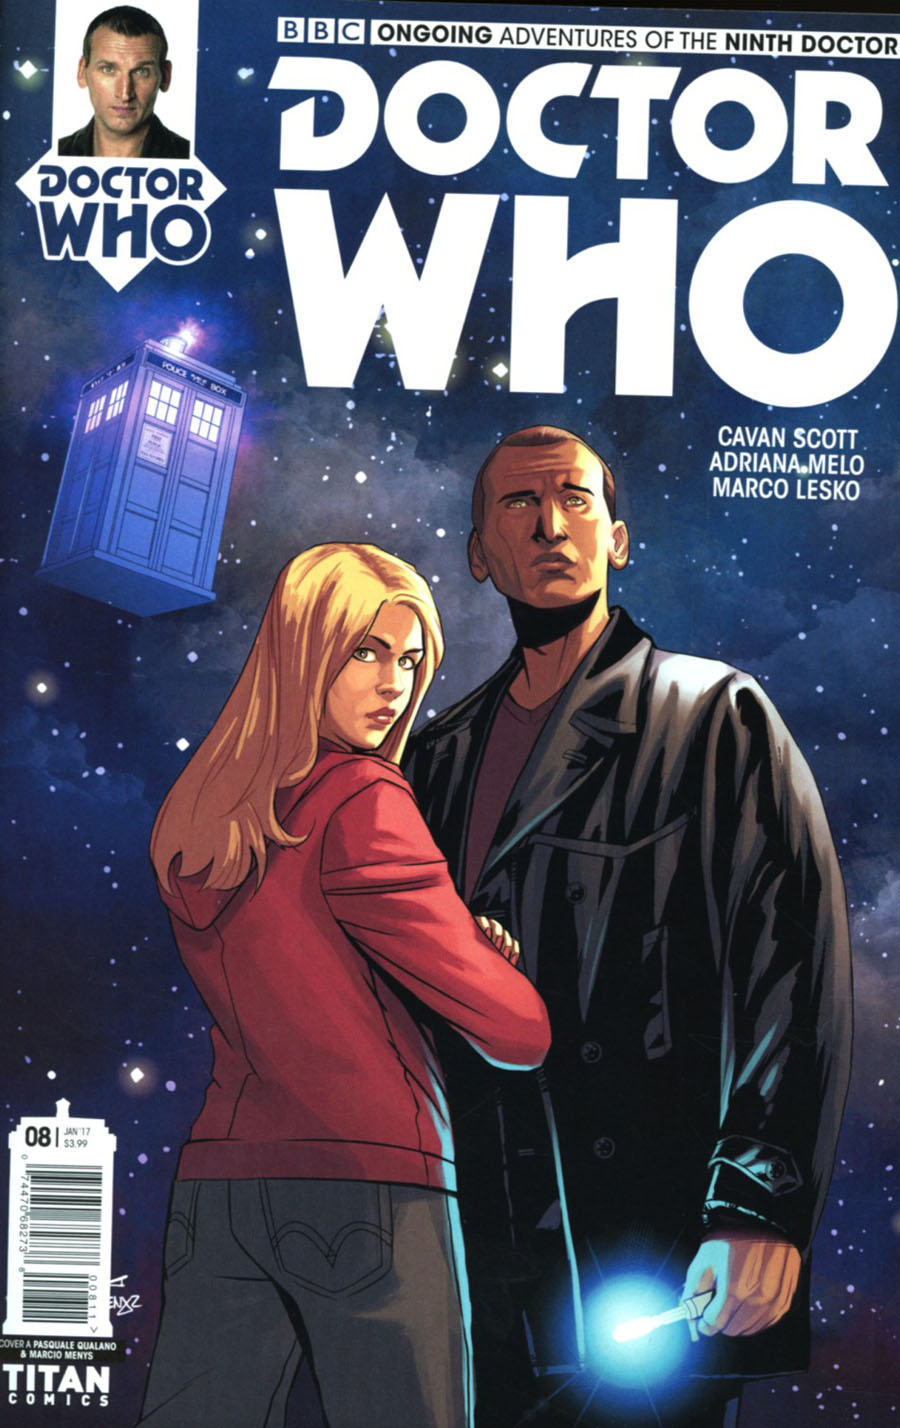 Doctor Who 9th Doctor Vol 2 #8 Cover A Regular Pasquale Qualano Cover